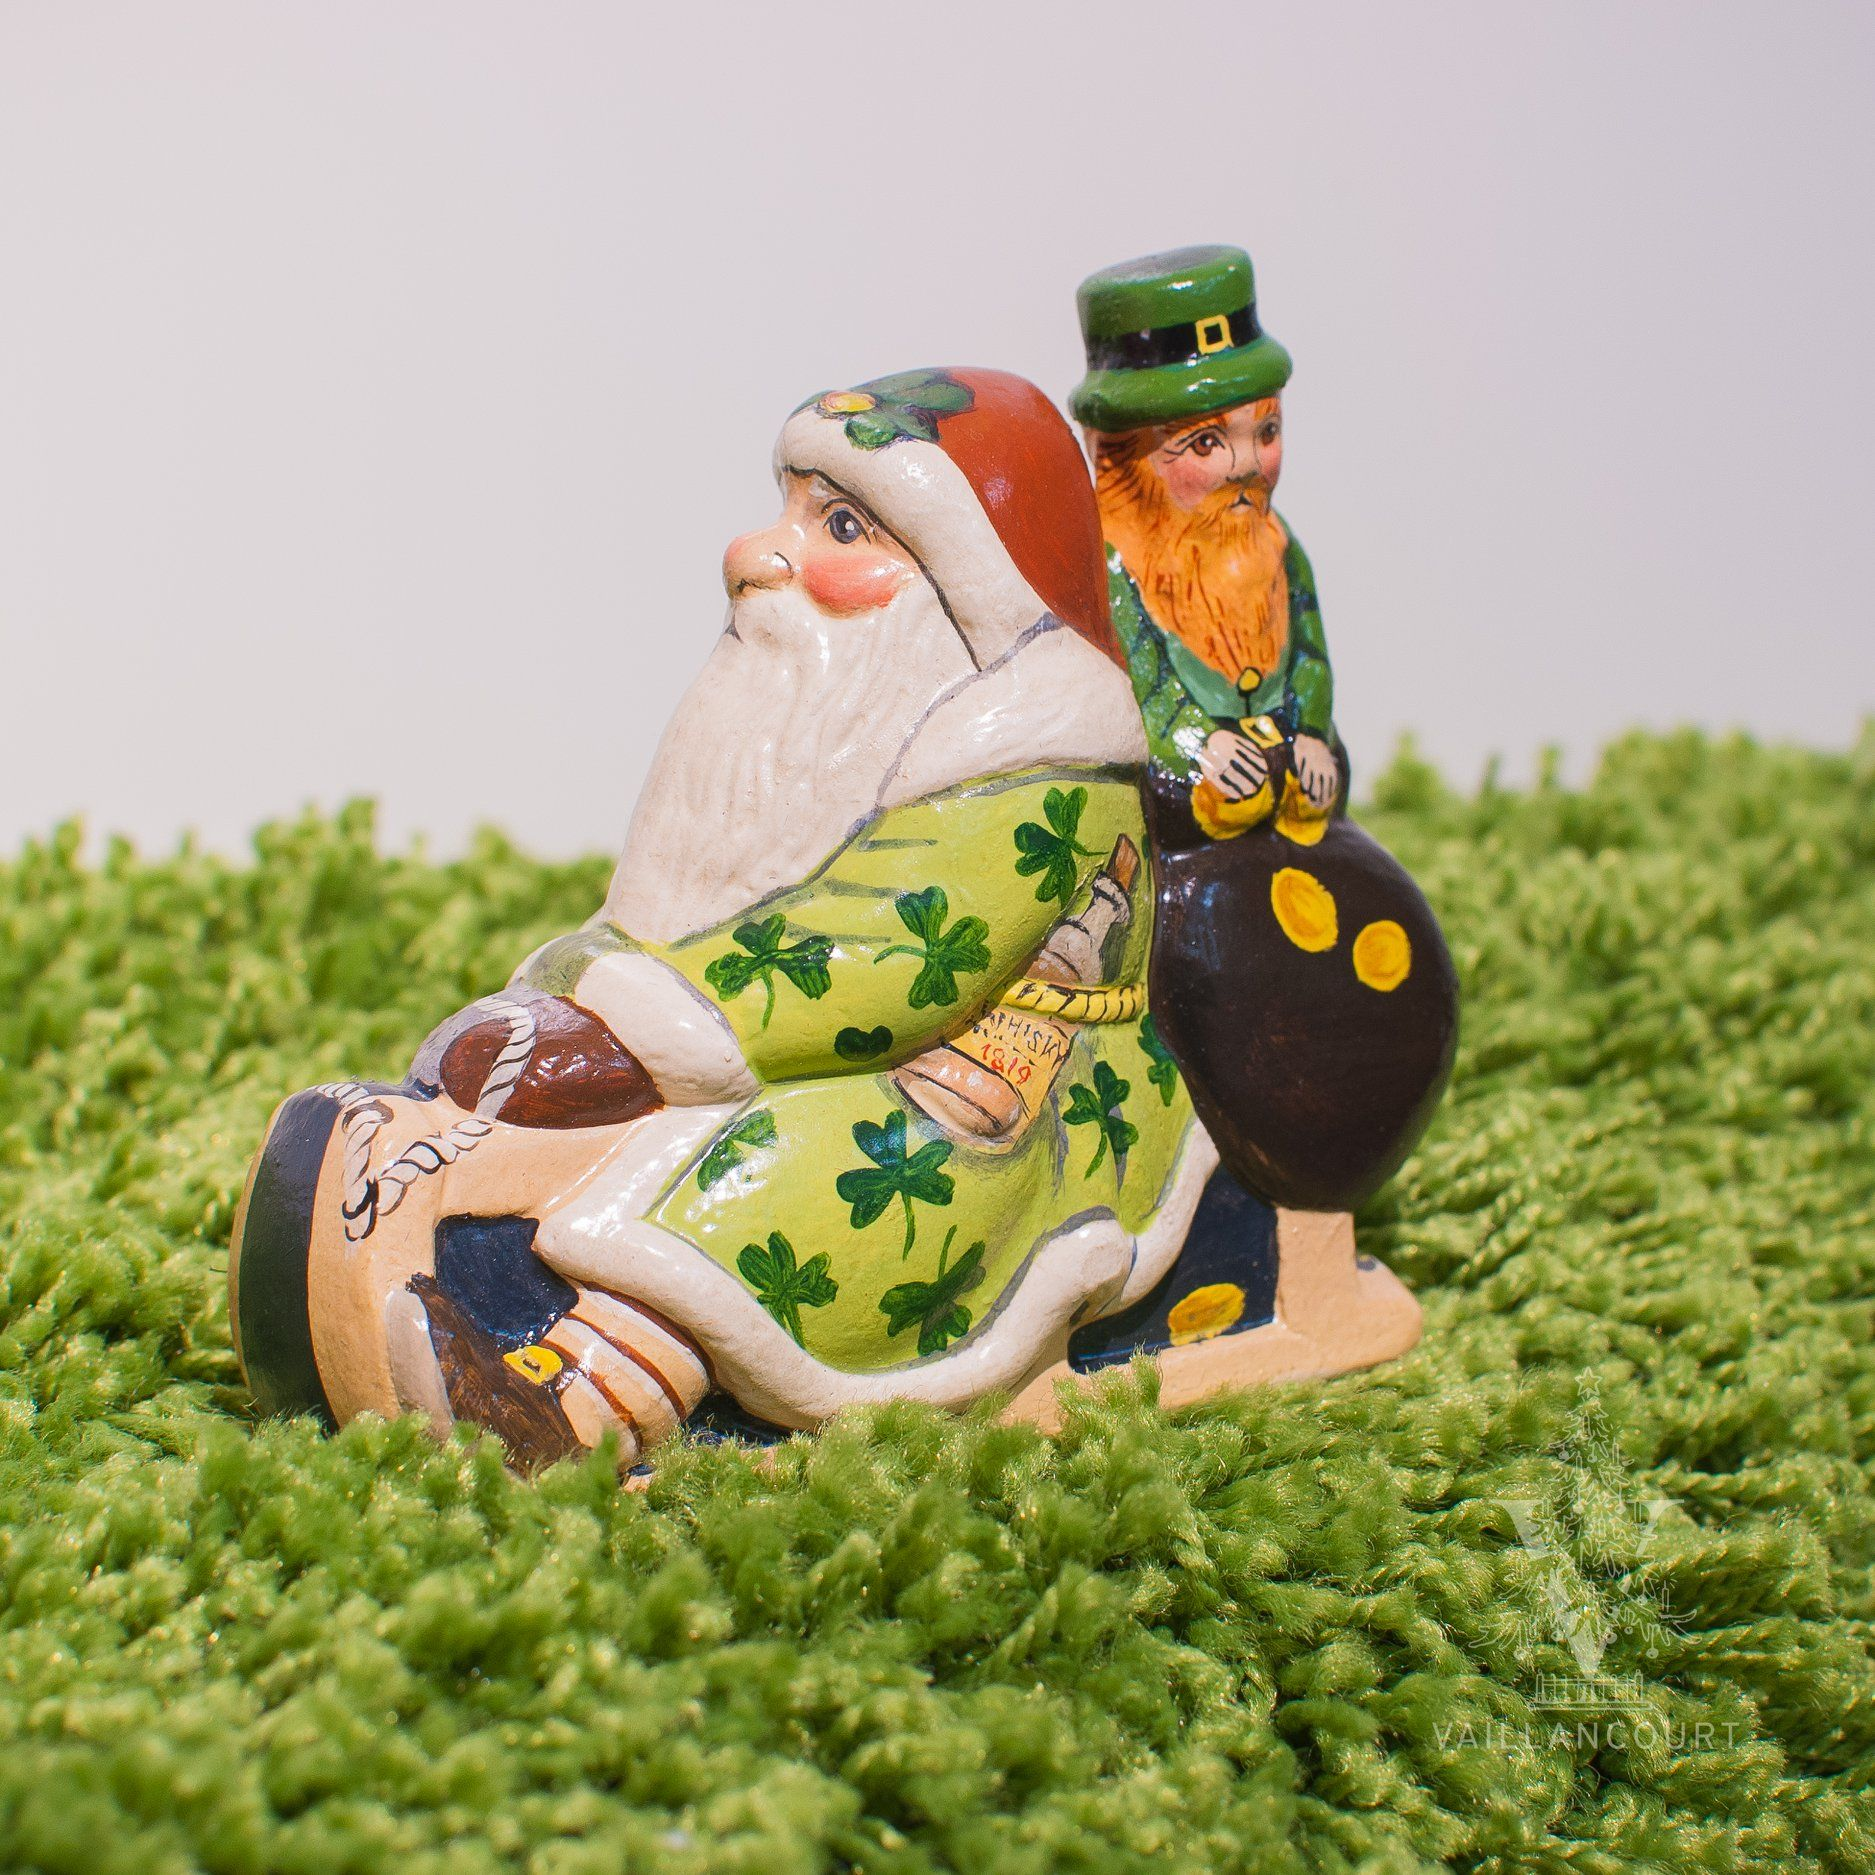 Irish Santa on Sled with Leprechaun from Vaillancourt in